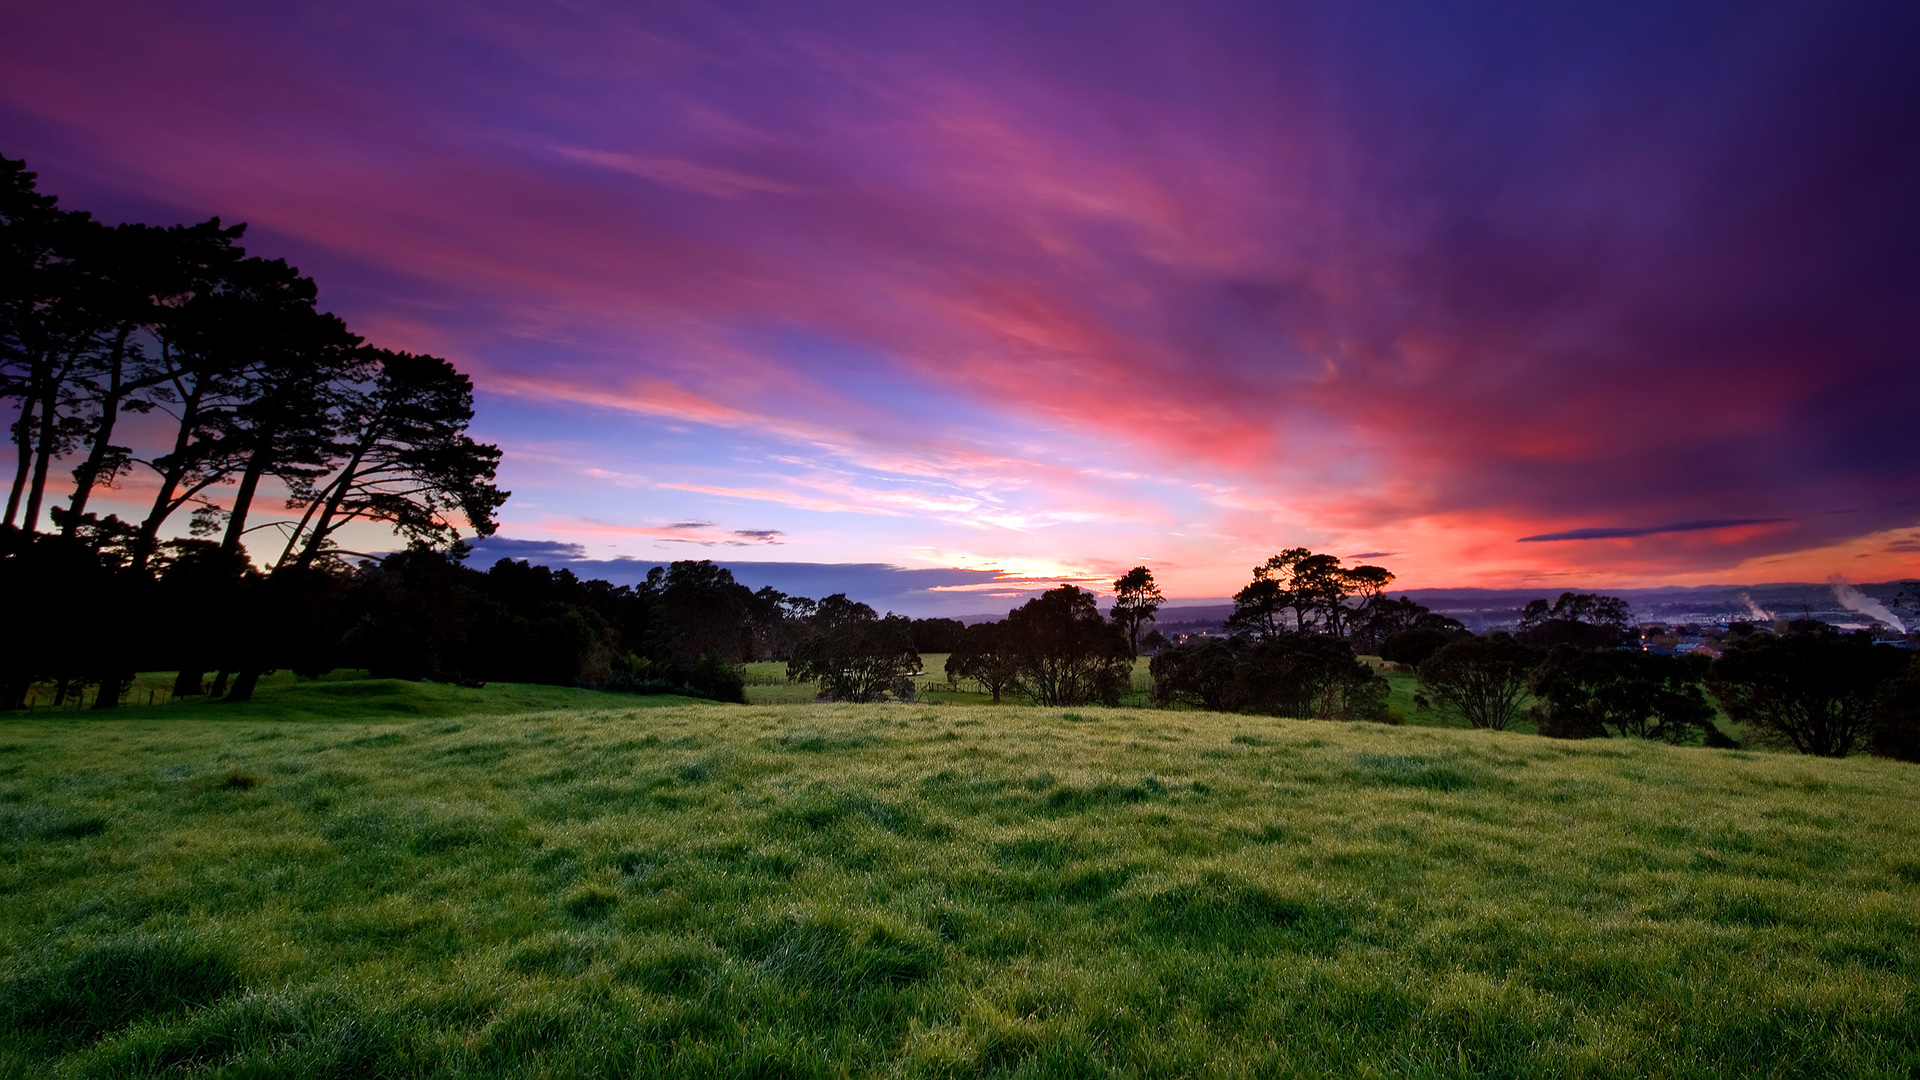 Image of a sunset over trees and a field